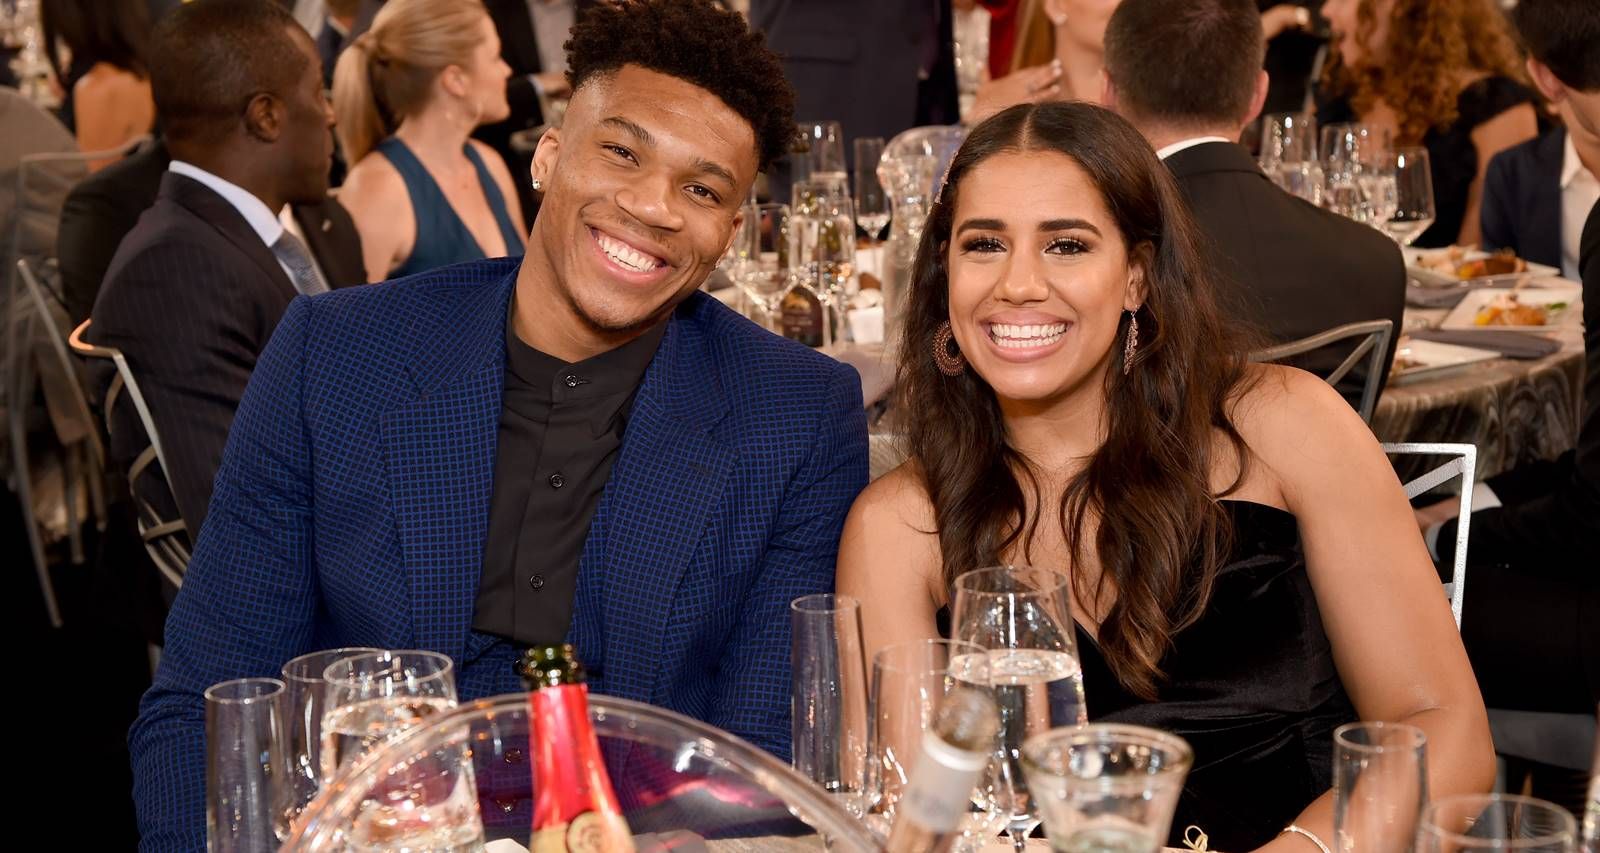 Mariah Riddlesprigger Wiki, Age, Family, Education, Career Kids and Facts About Giannis Antetokounmpo's Girlfriend